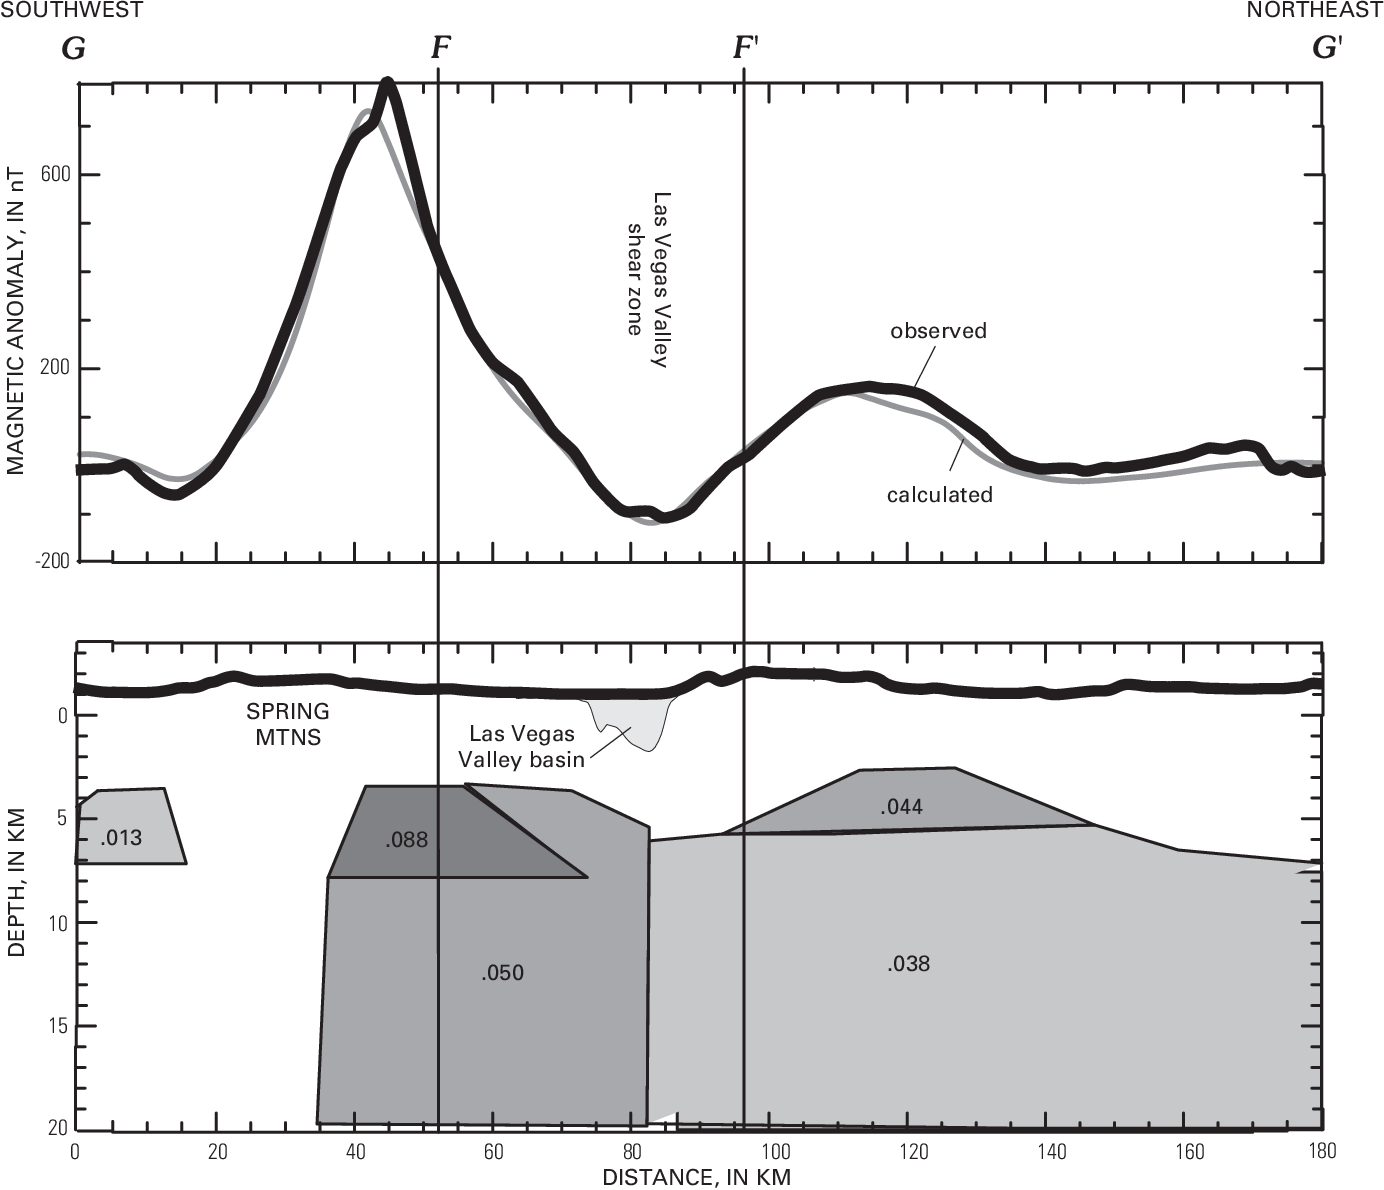 Figure 8 from Geologic and geophysical maps of the Las Vegas 30' x